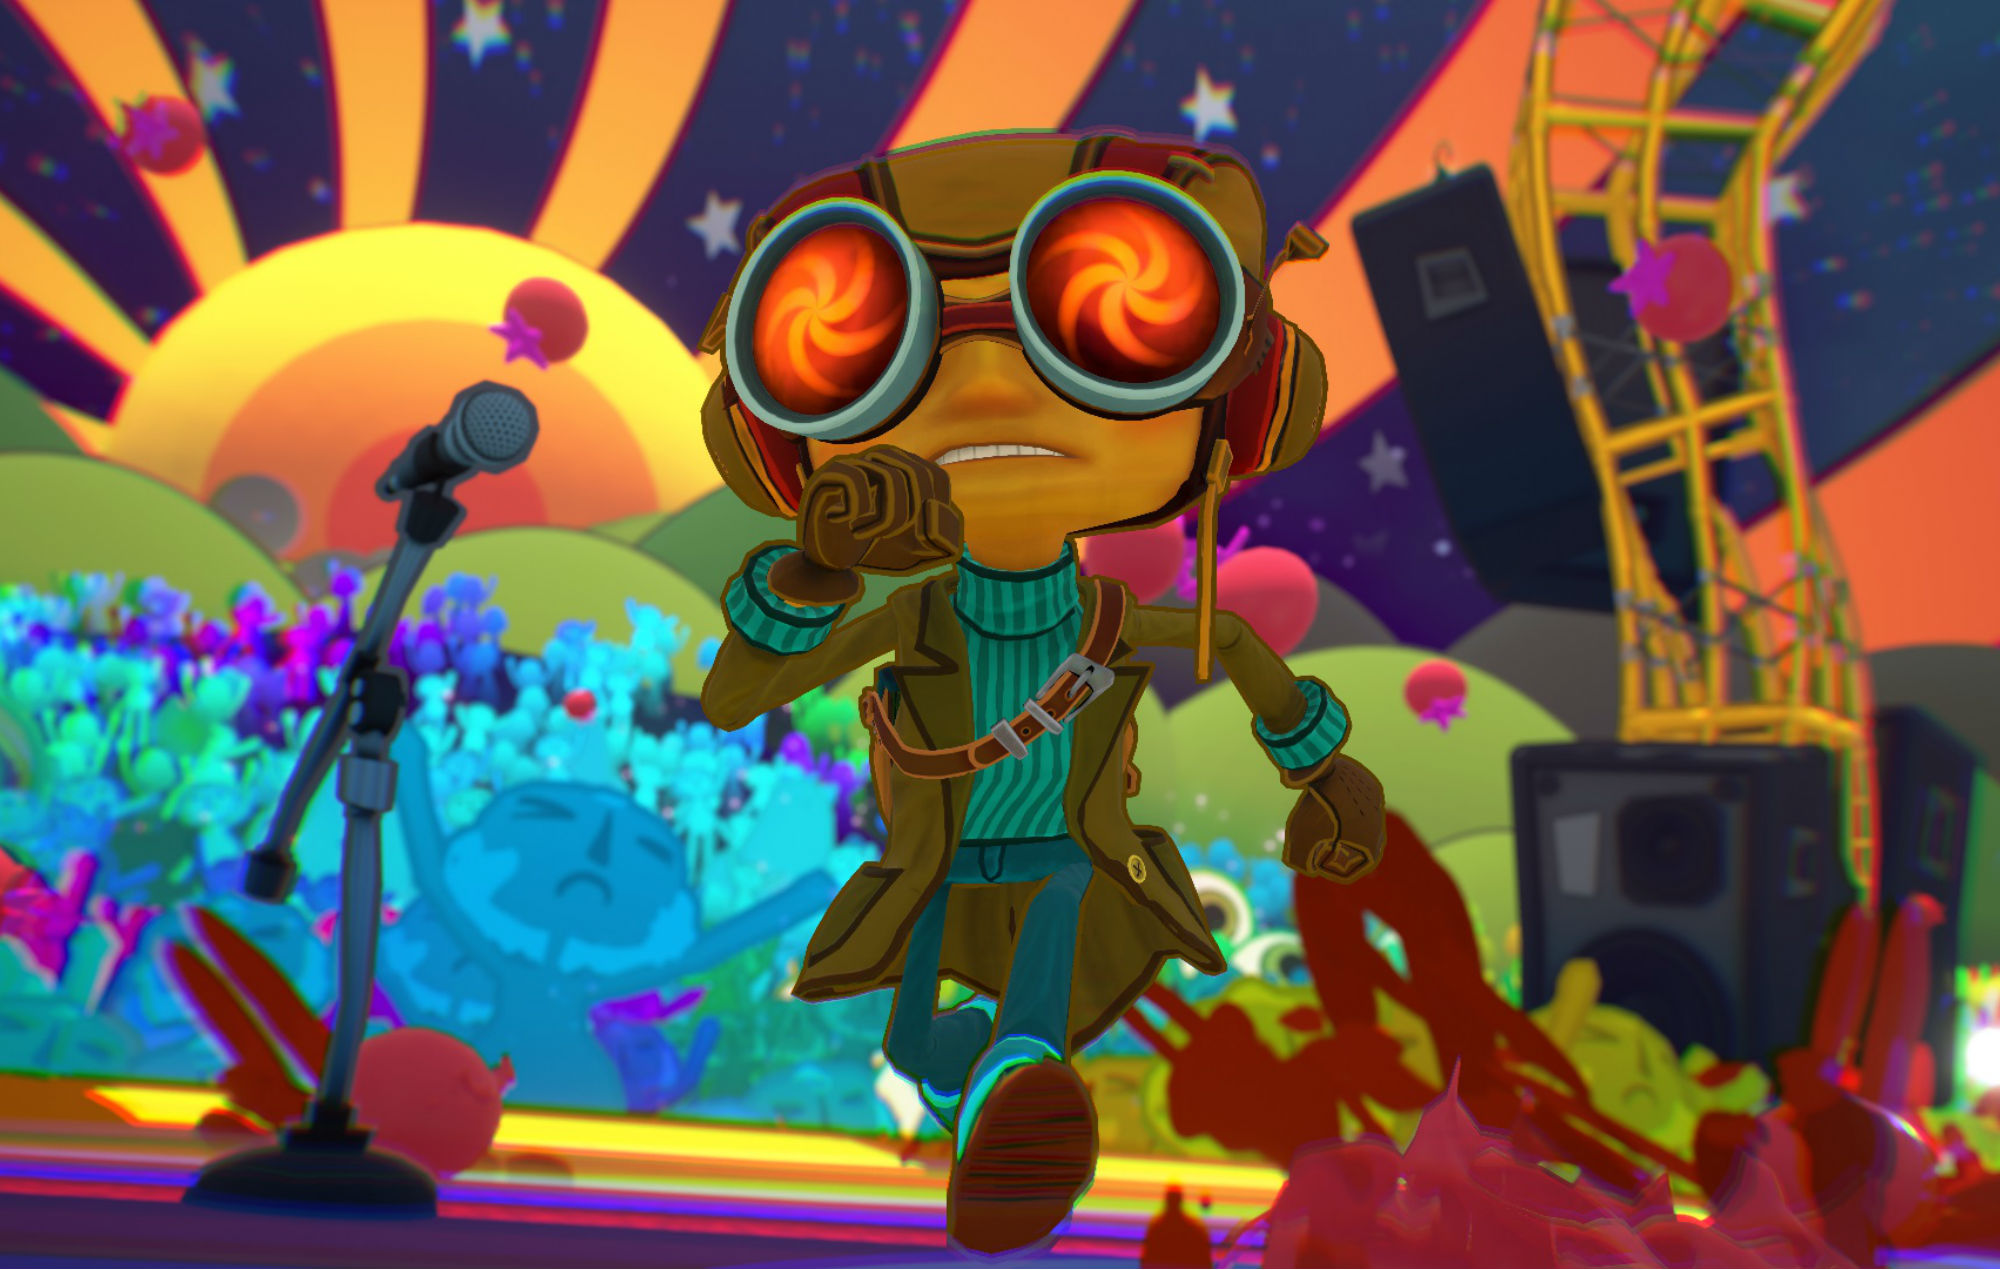 'Psychonauts 2' 'can be played' and is coming out sometime this year